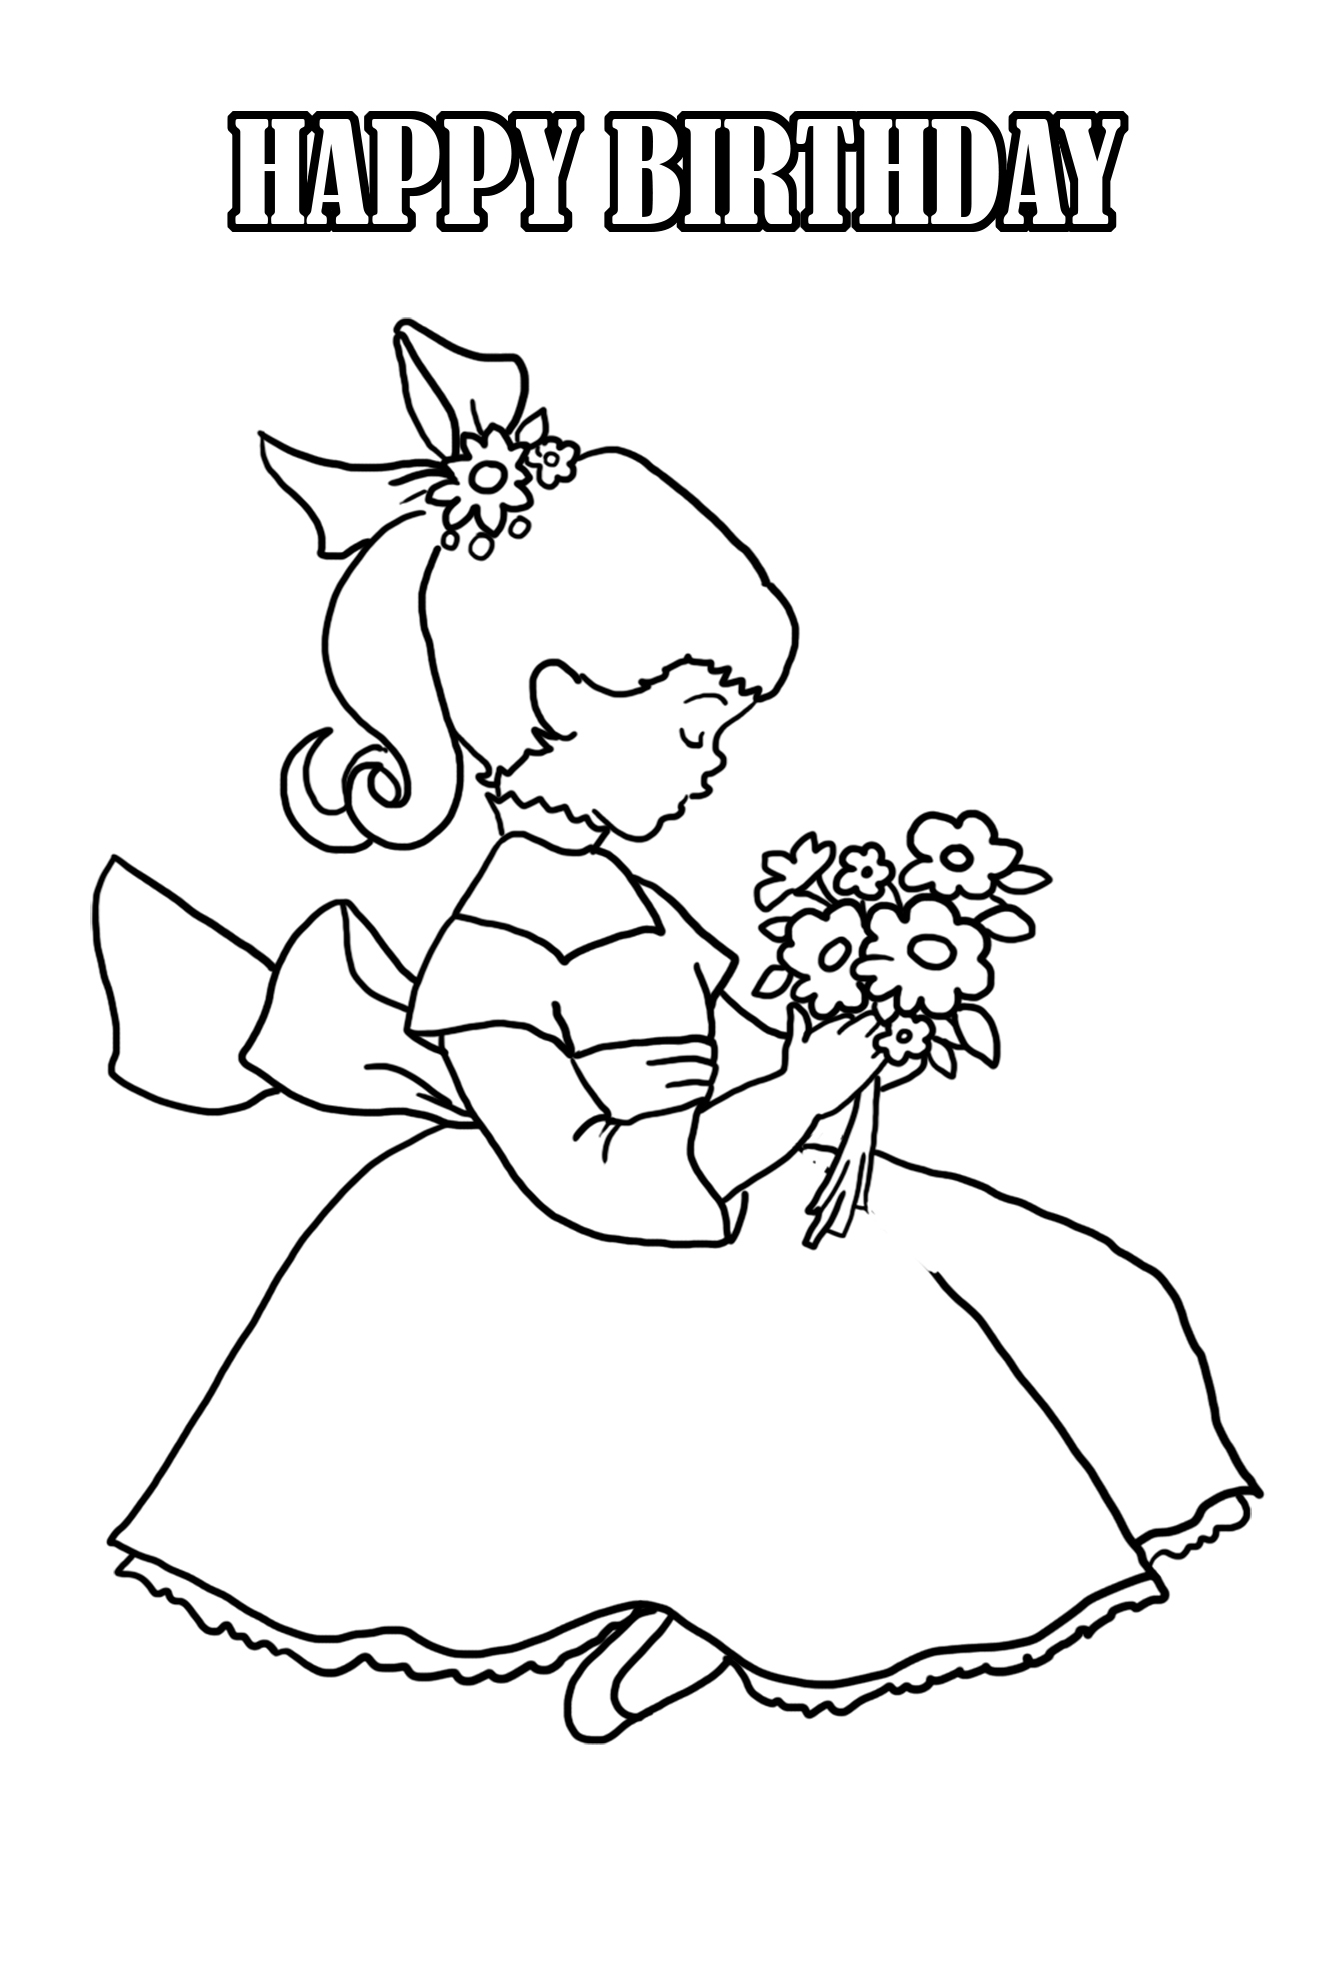 birthday girl coloring pages birthday party netart coloring birthday pages girl